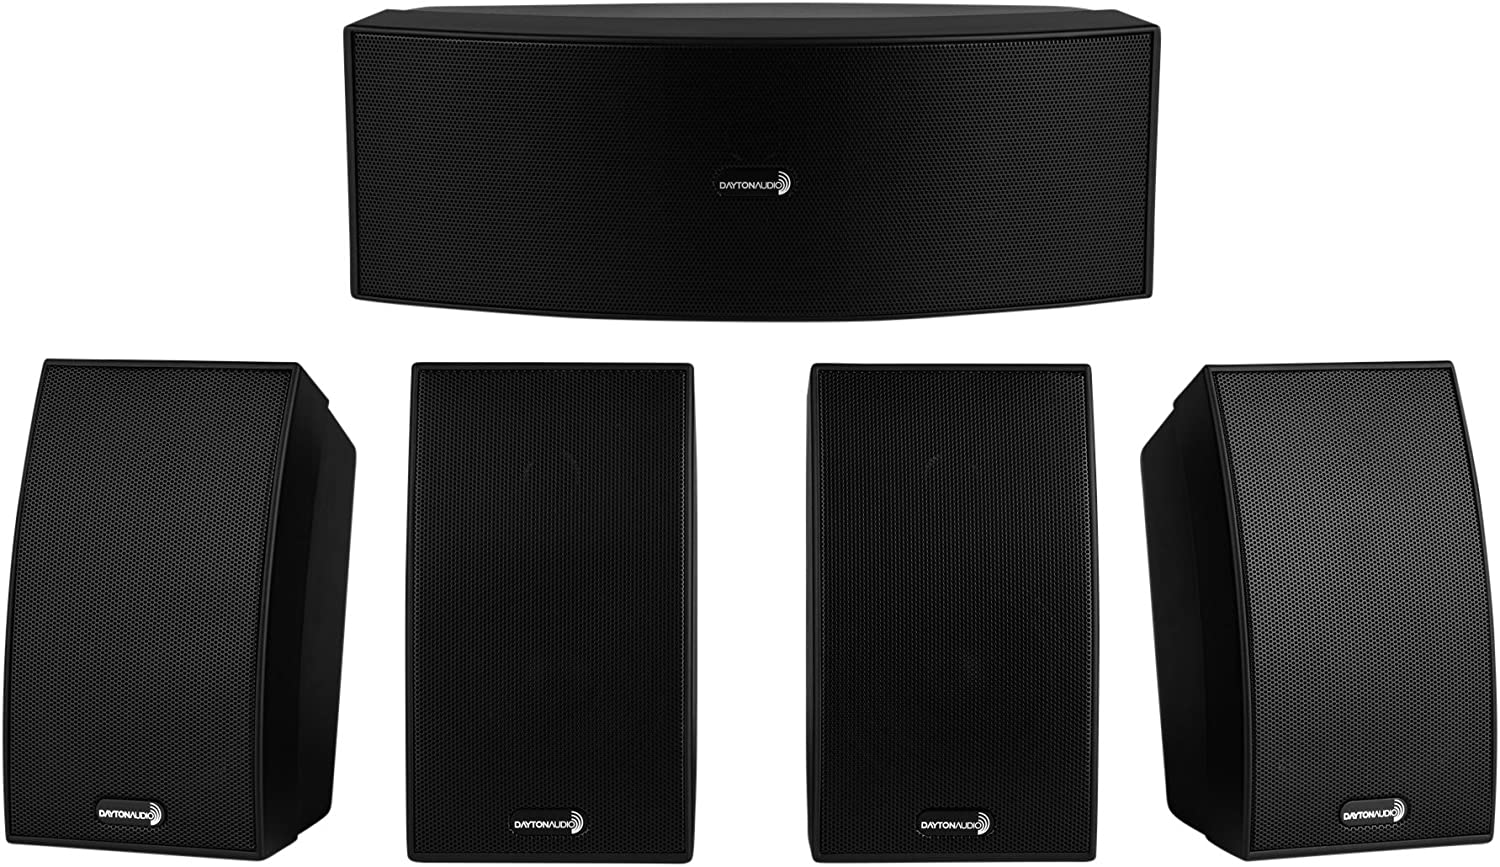 B000I7U1OU Dayton Audio HTS-1200B Home Theater Speaker System Black 81V1gZ2BrLeL.SL1500_